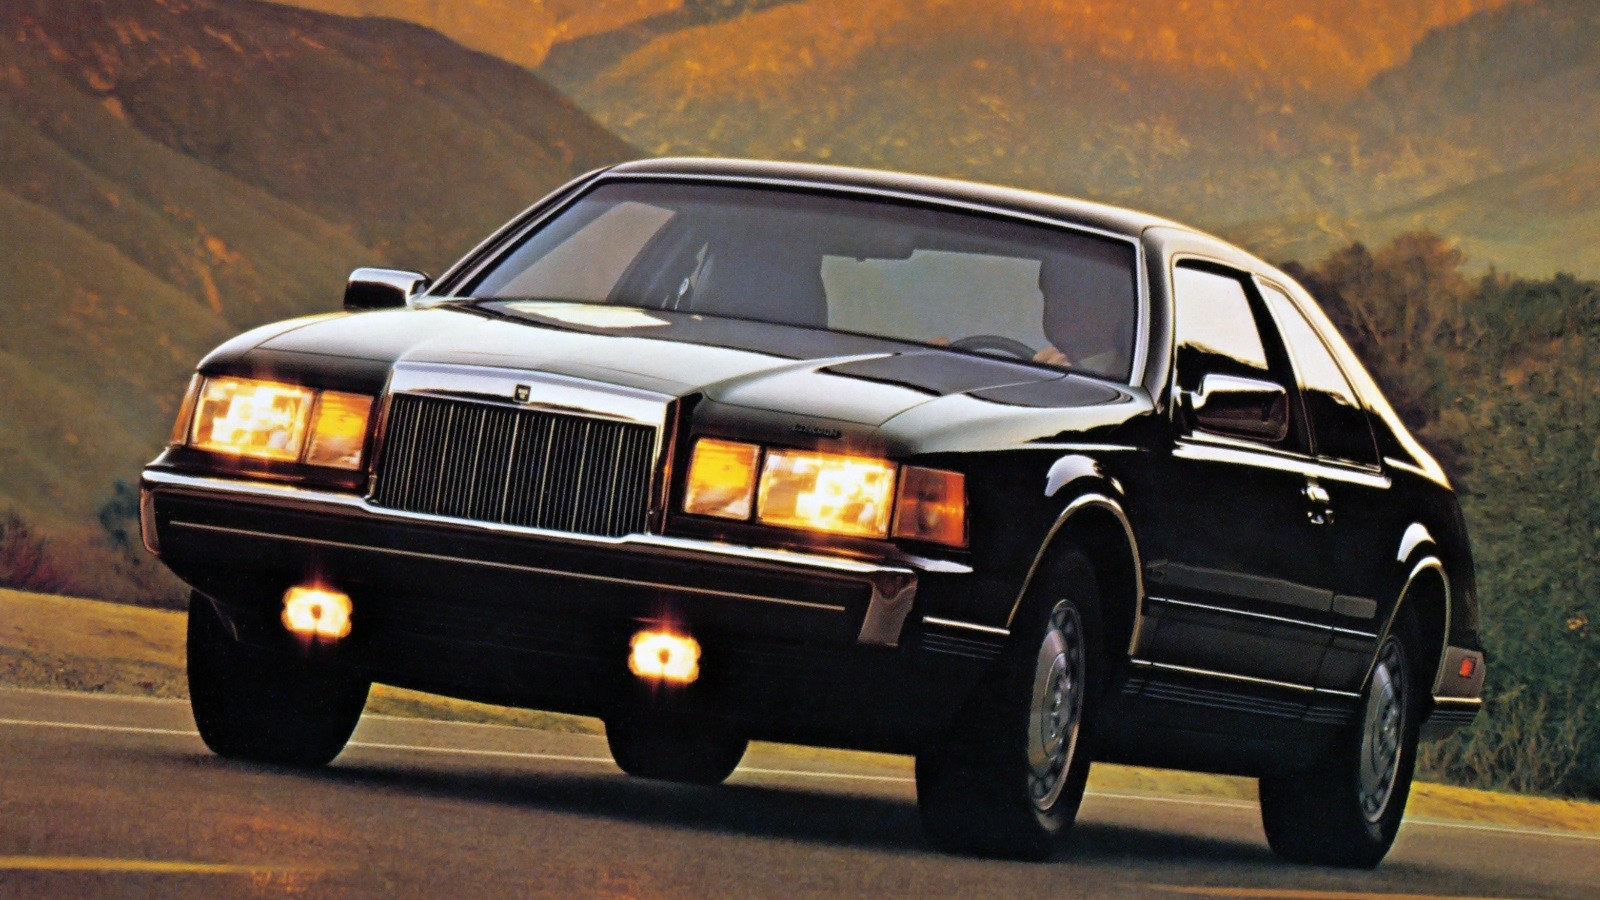 luxury american classics that are now bargains classic sports car luxury american classics that are now